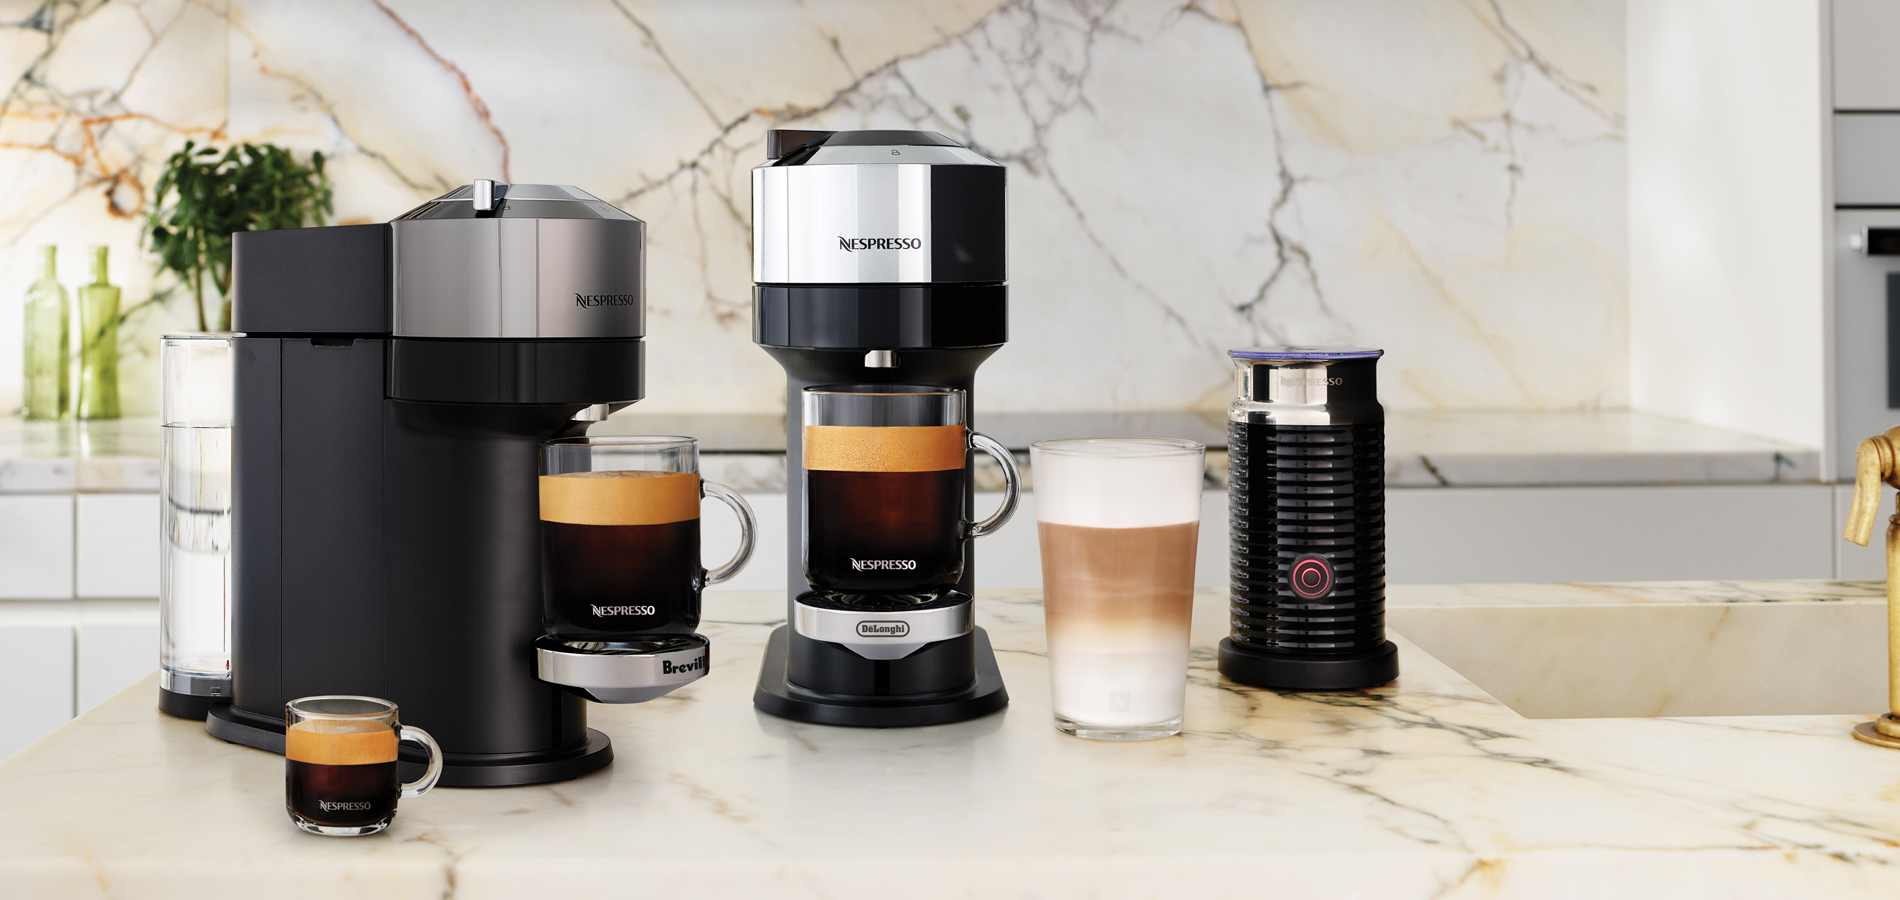 INTRODUCING NESPRESSO VERTUO NEXT DELUXE